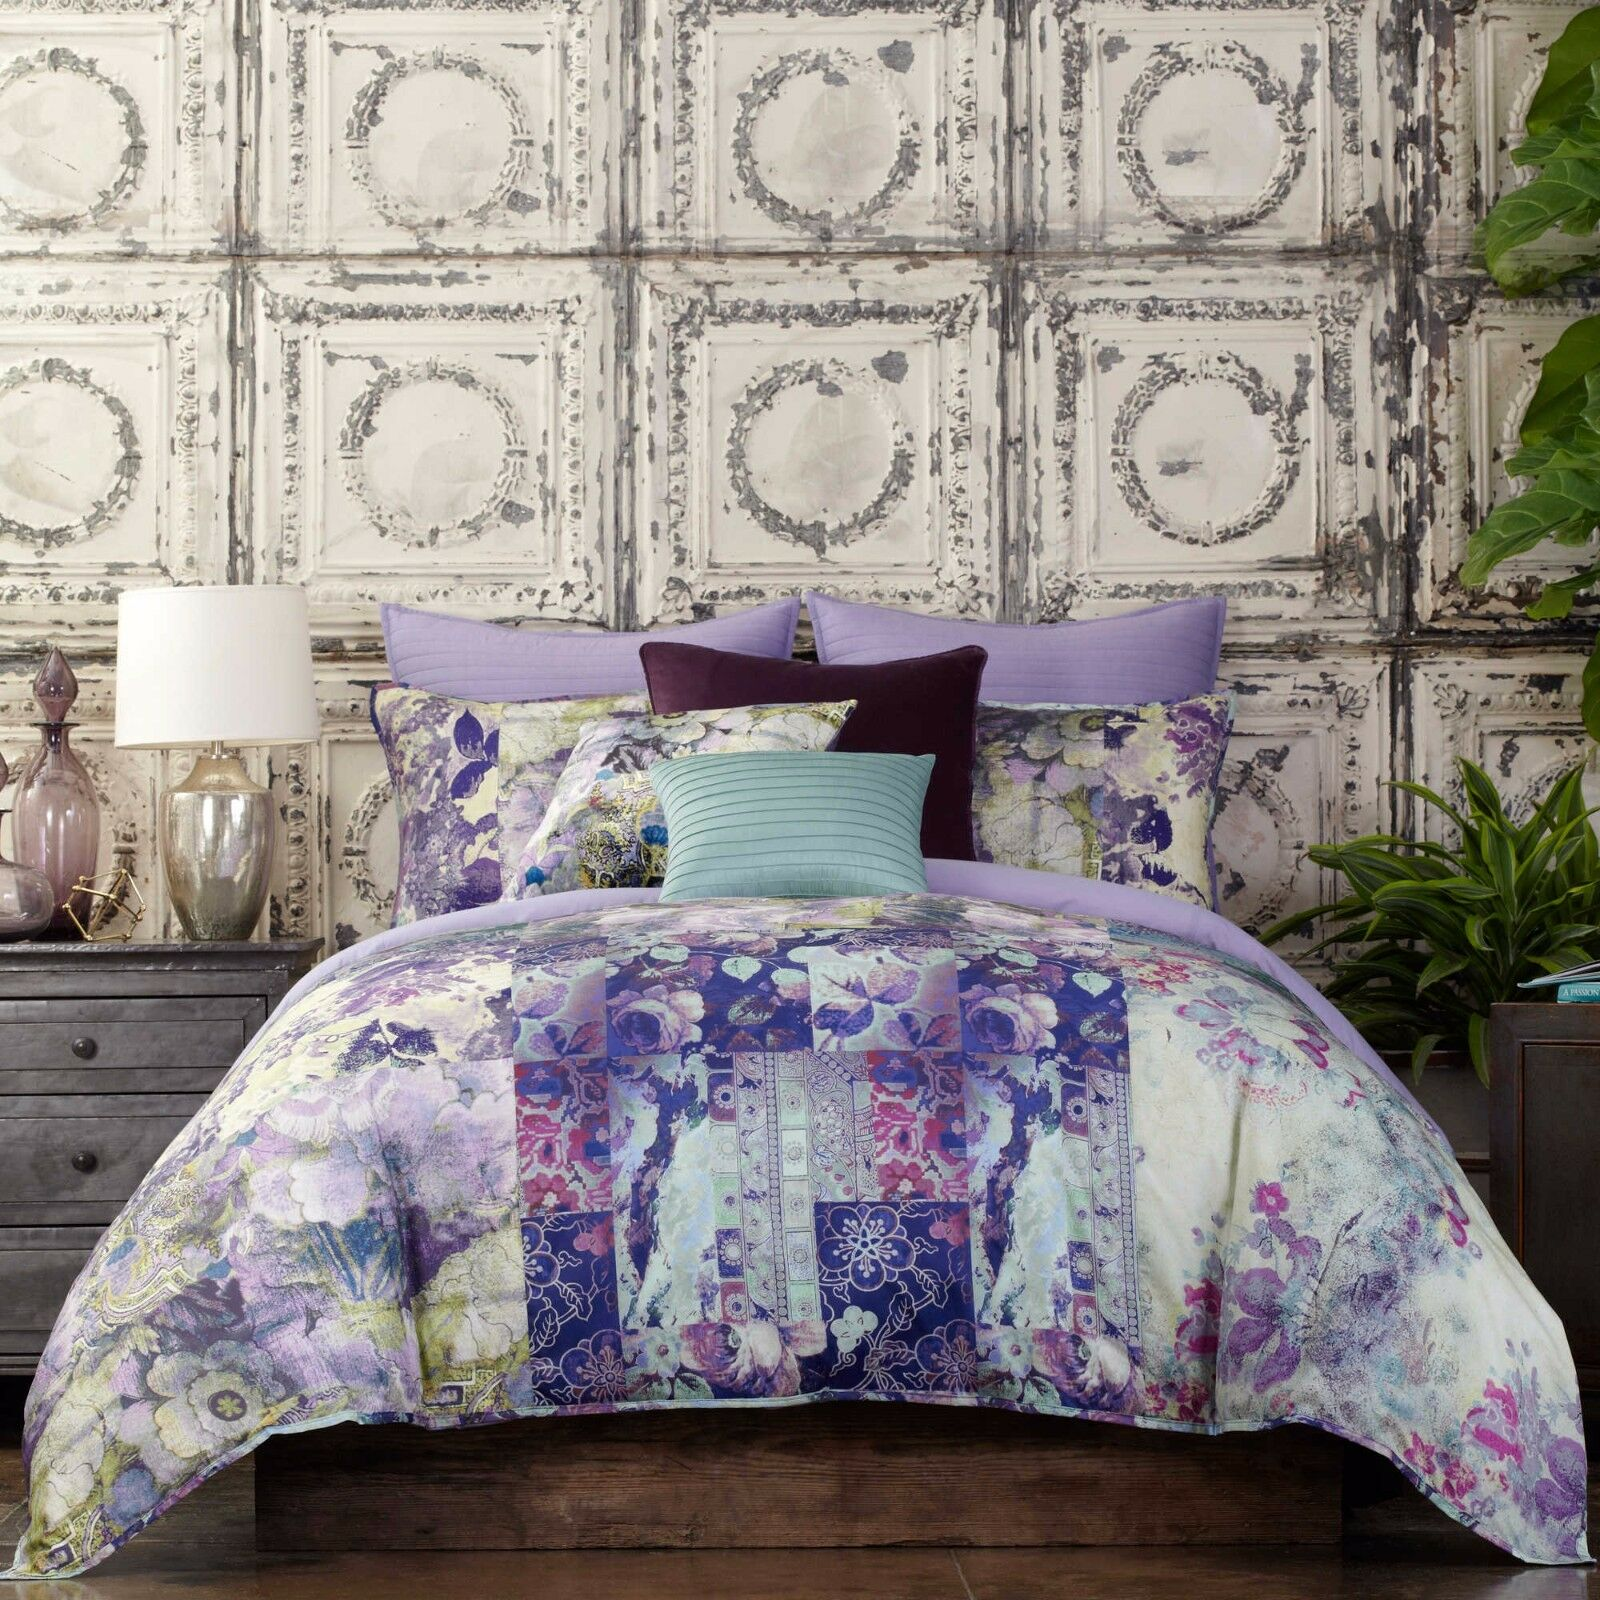 POETIC WANDERLUST KIT TWIN COMFORTER SET IN lila HUES ECLECTIC BY TRACY PORTER